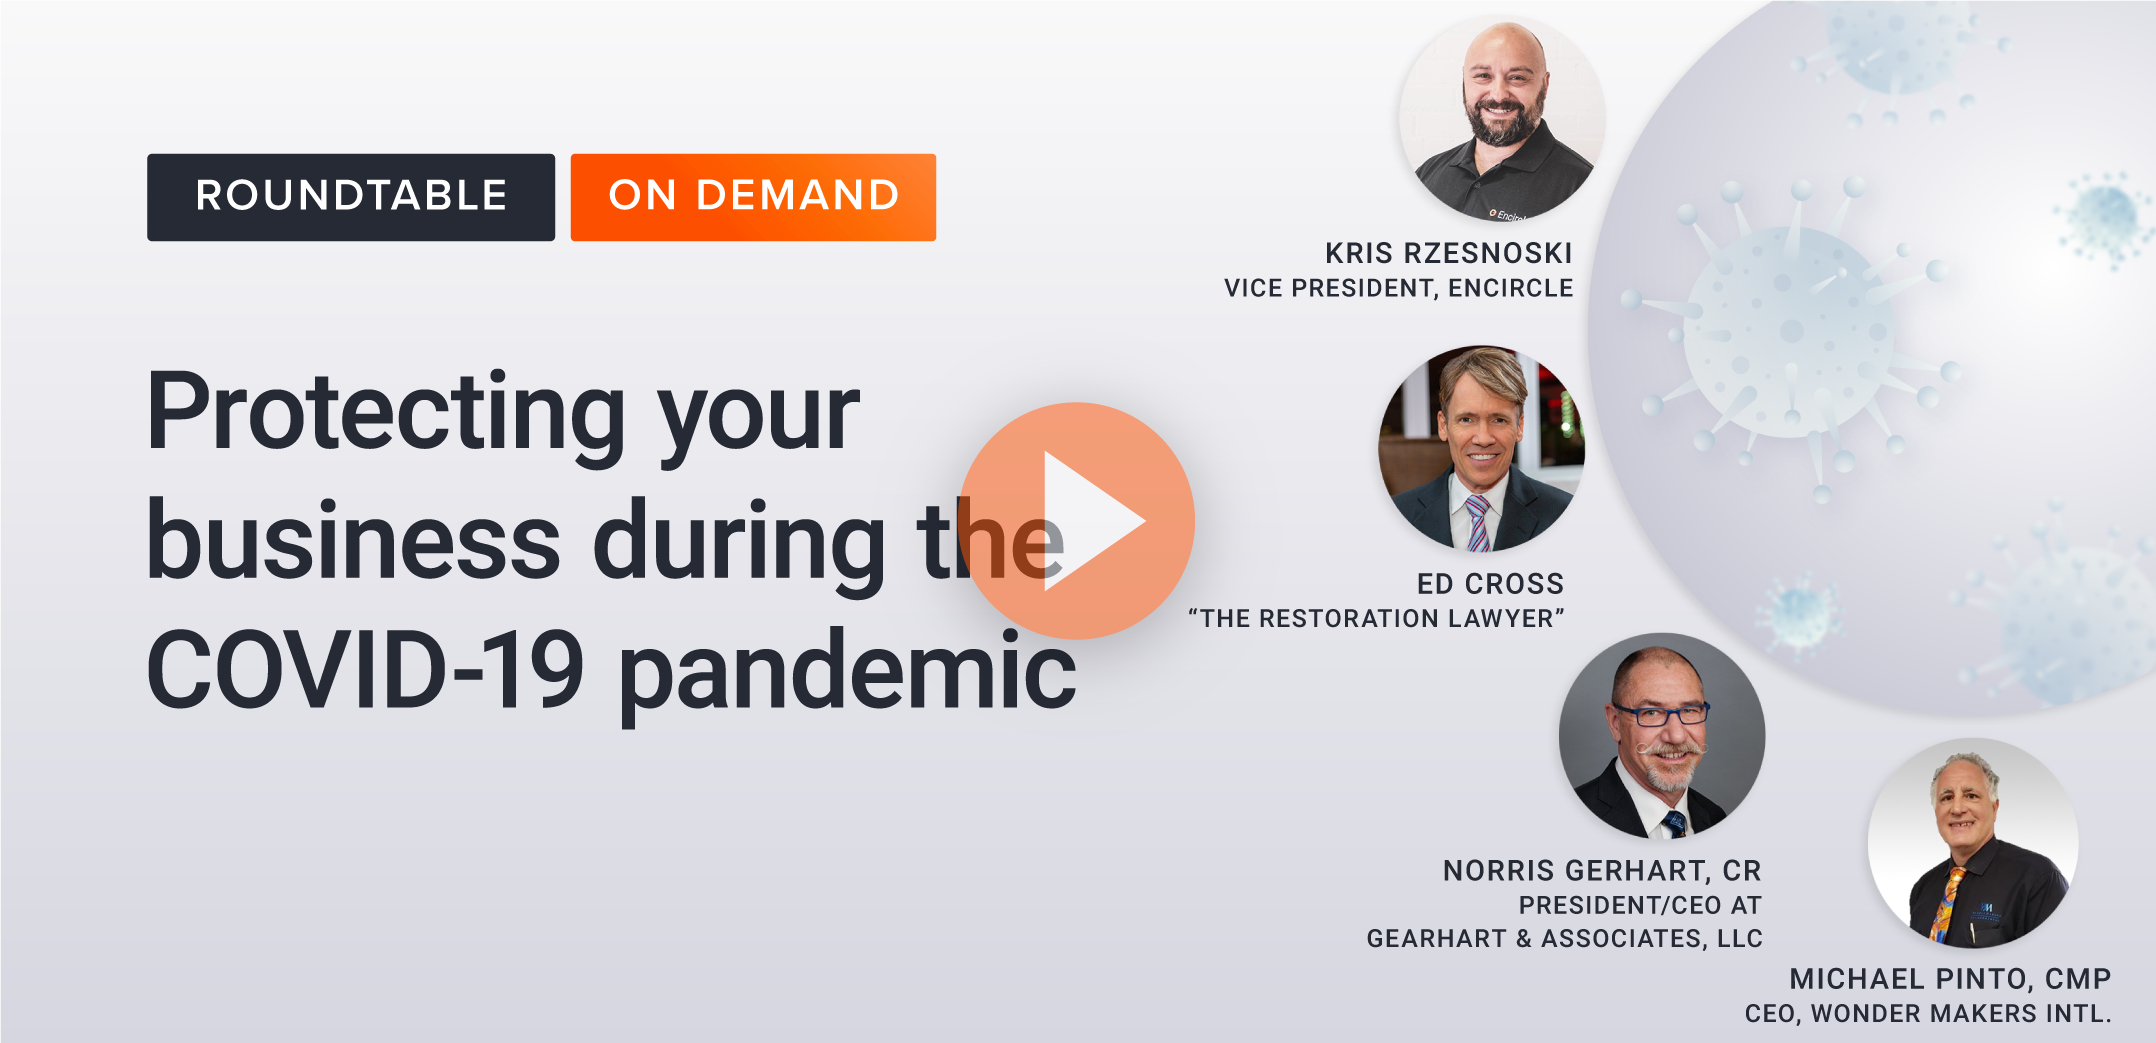 Protecting Your Business During the COVID-19 Pandemic